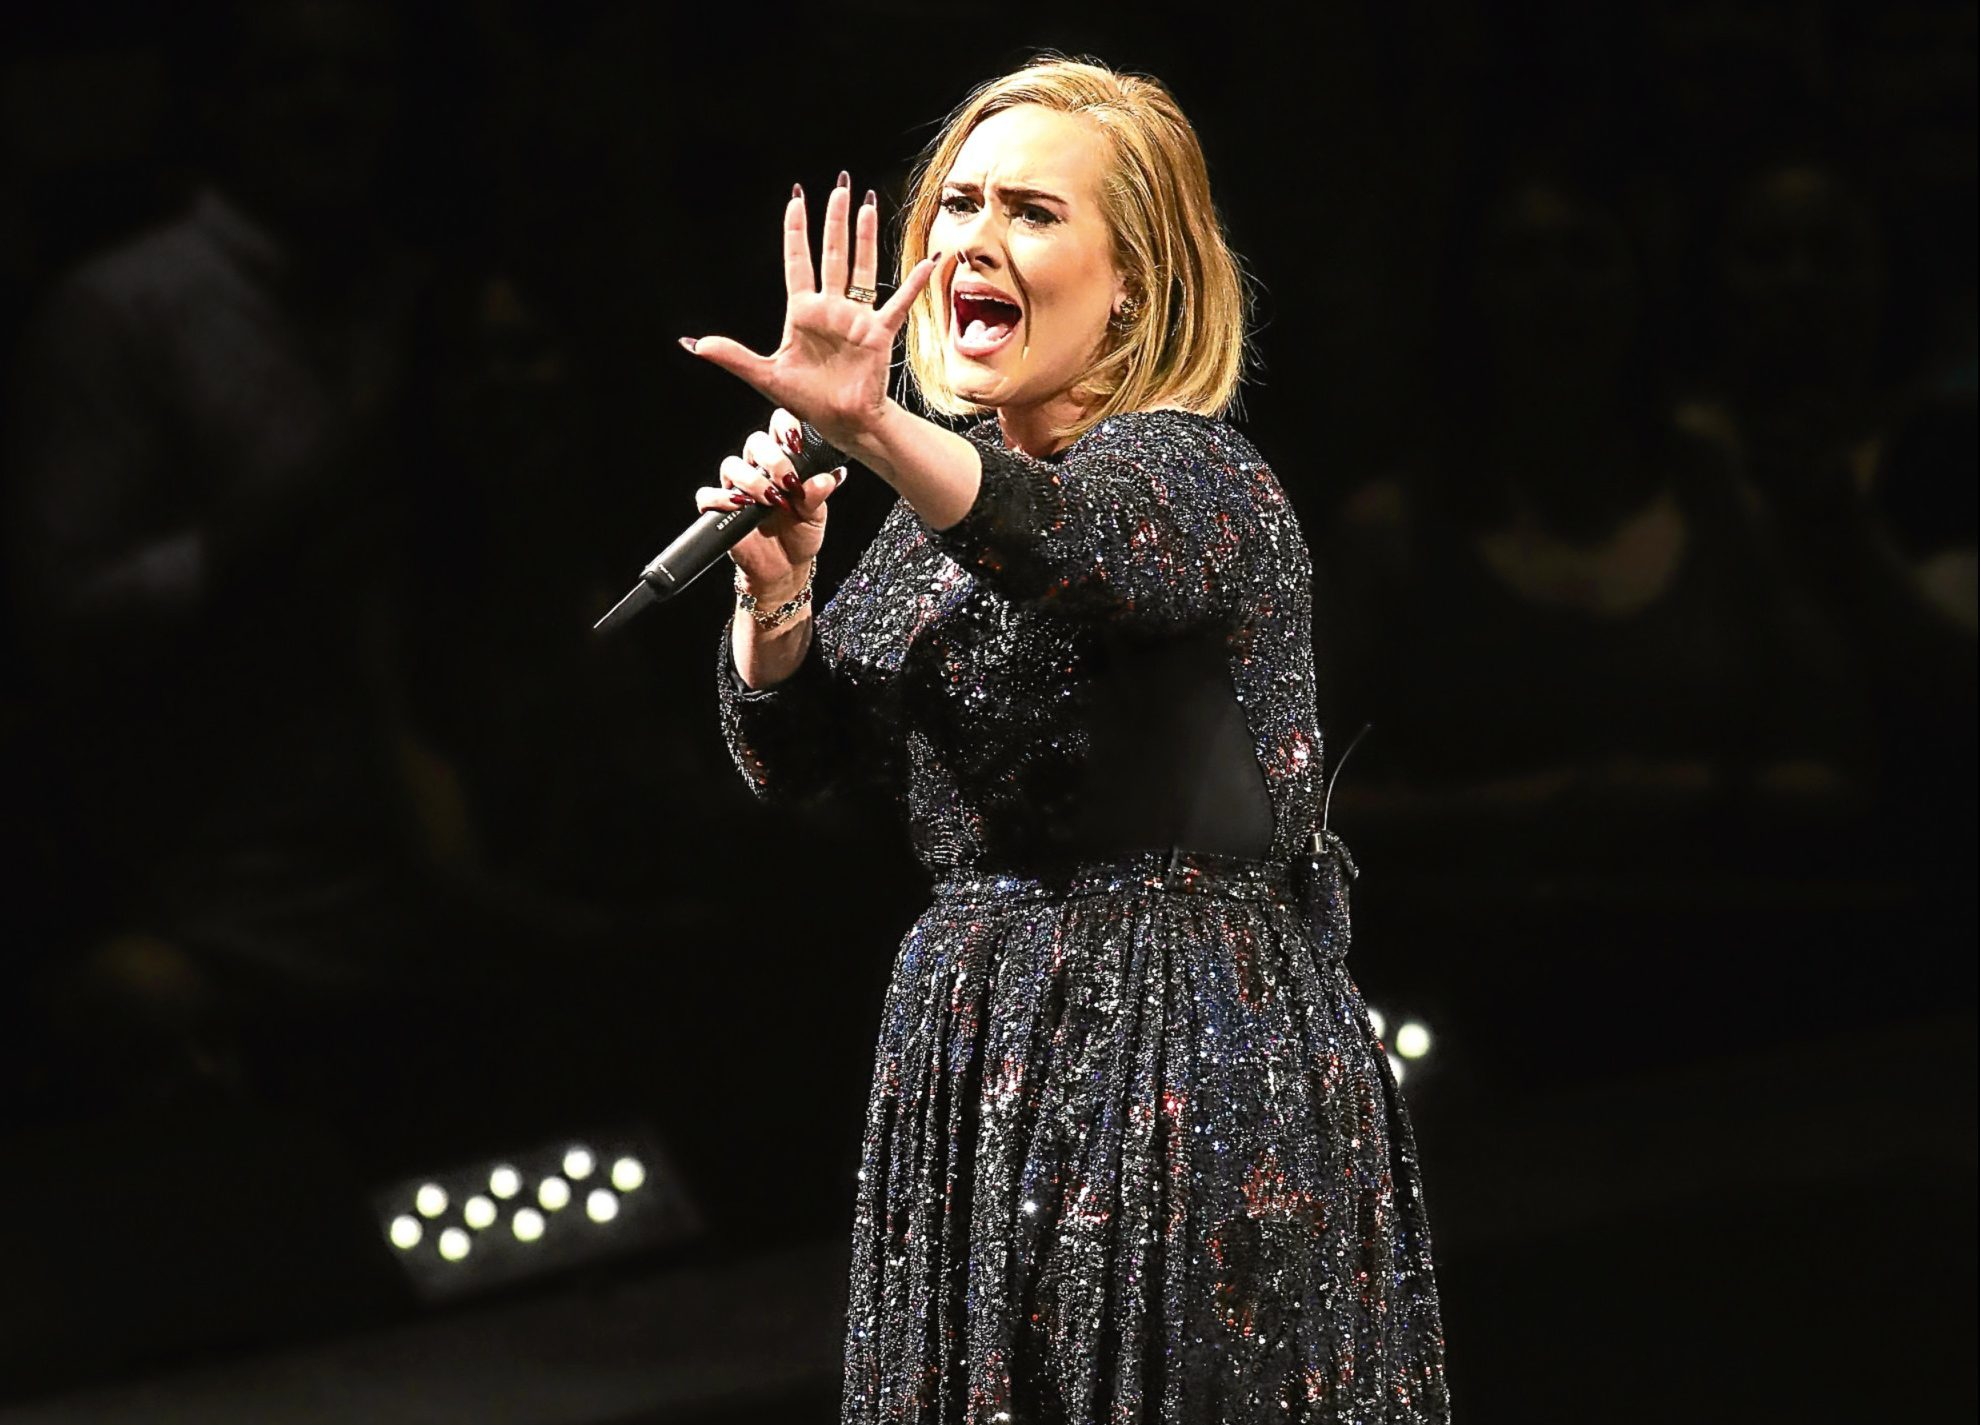 Singer Adele (Photo by Adam Bettcher/Getty Images for BT PR)